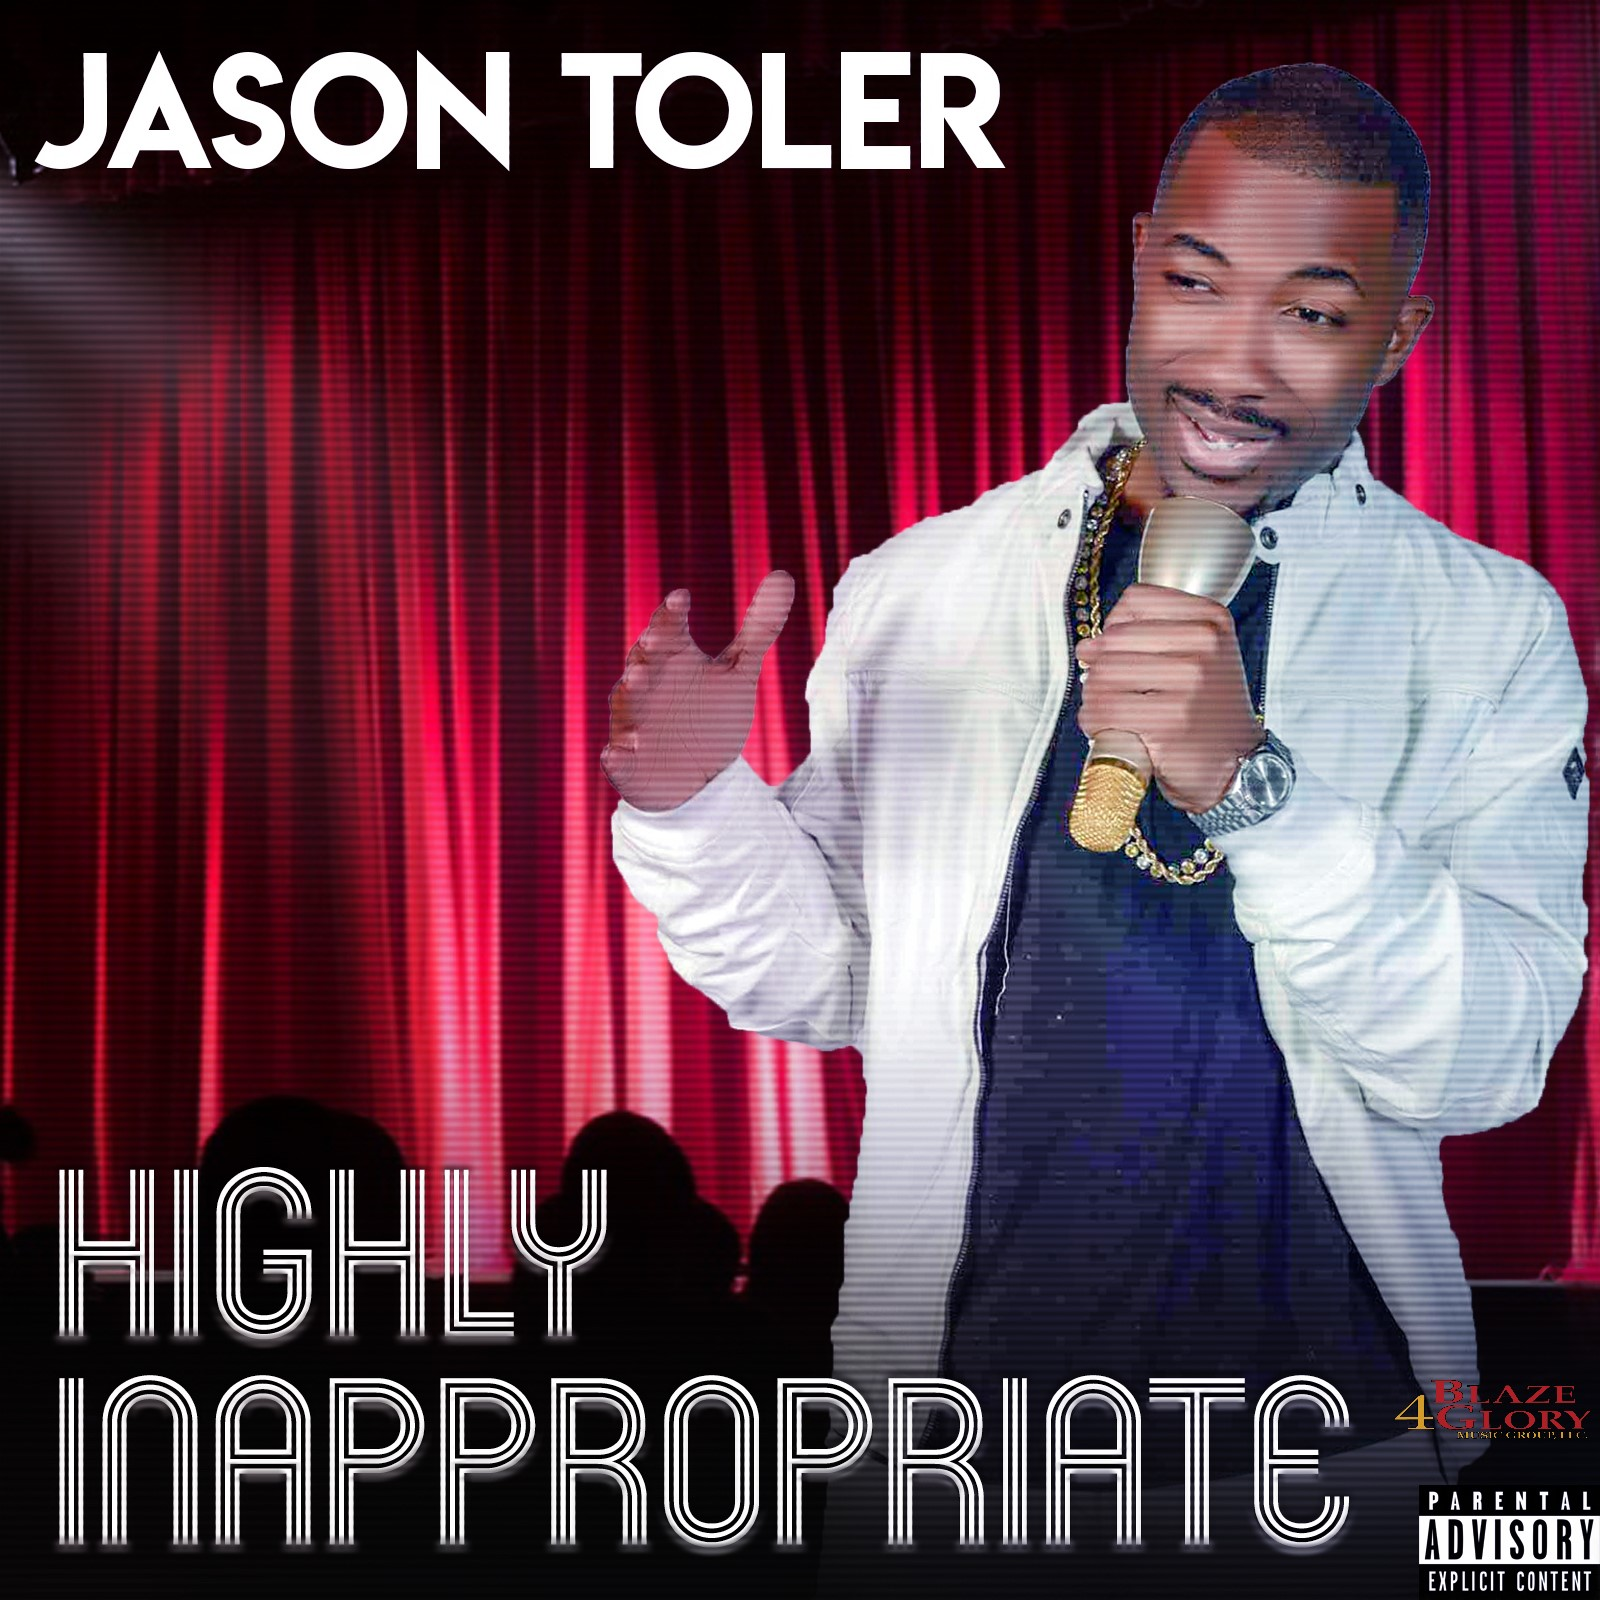 Jason Toler - Highly Inappropriate (The Comedy Album) (Explicit)